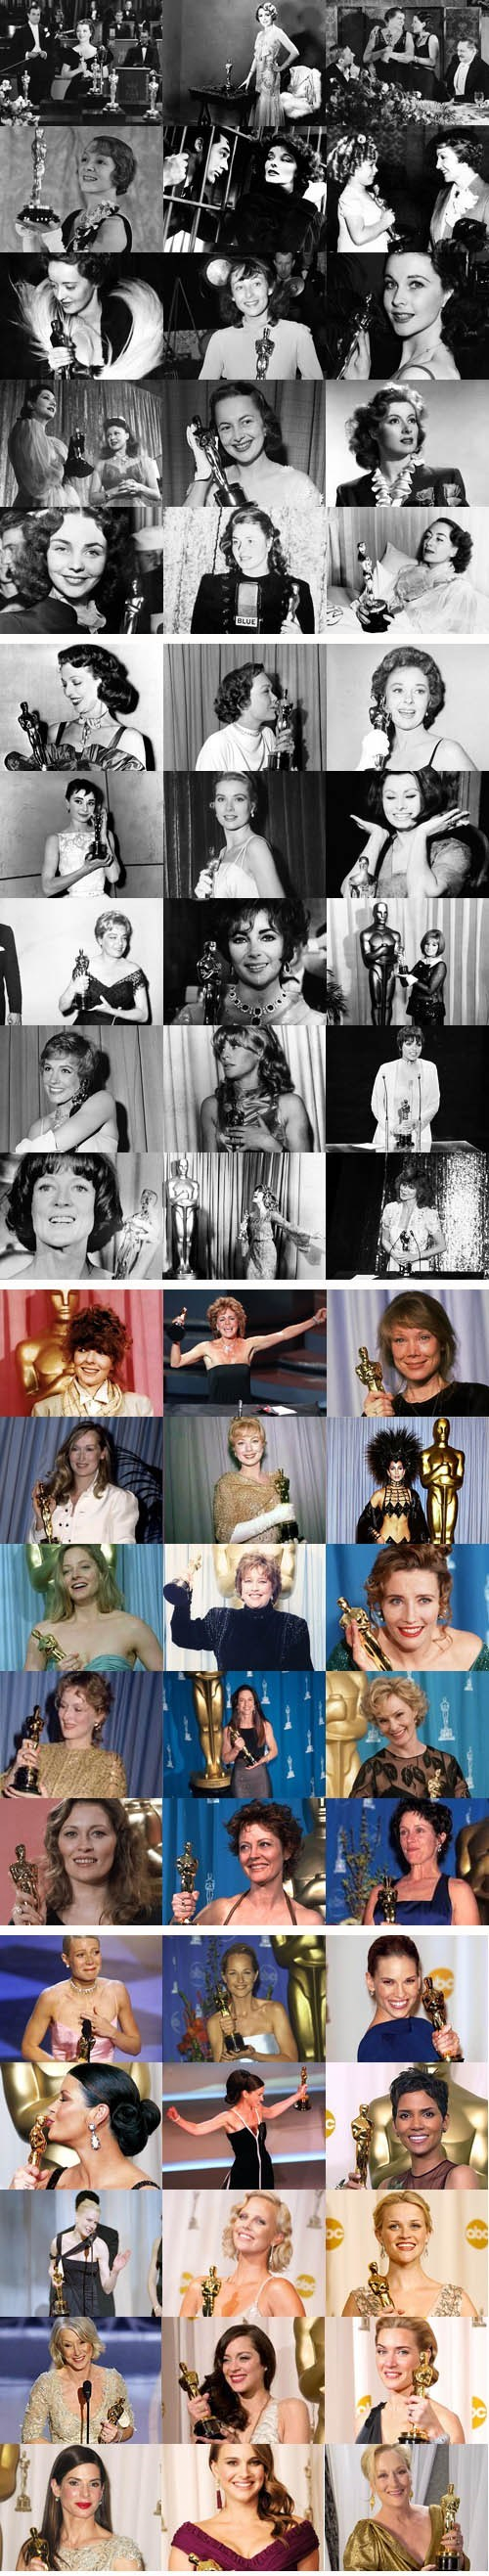 best actress academy awards oscars